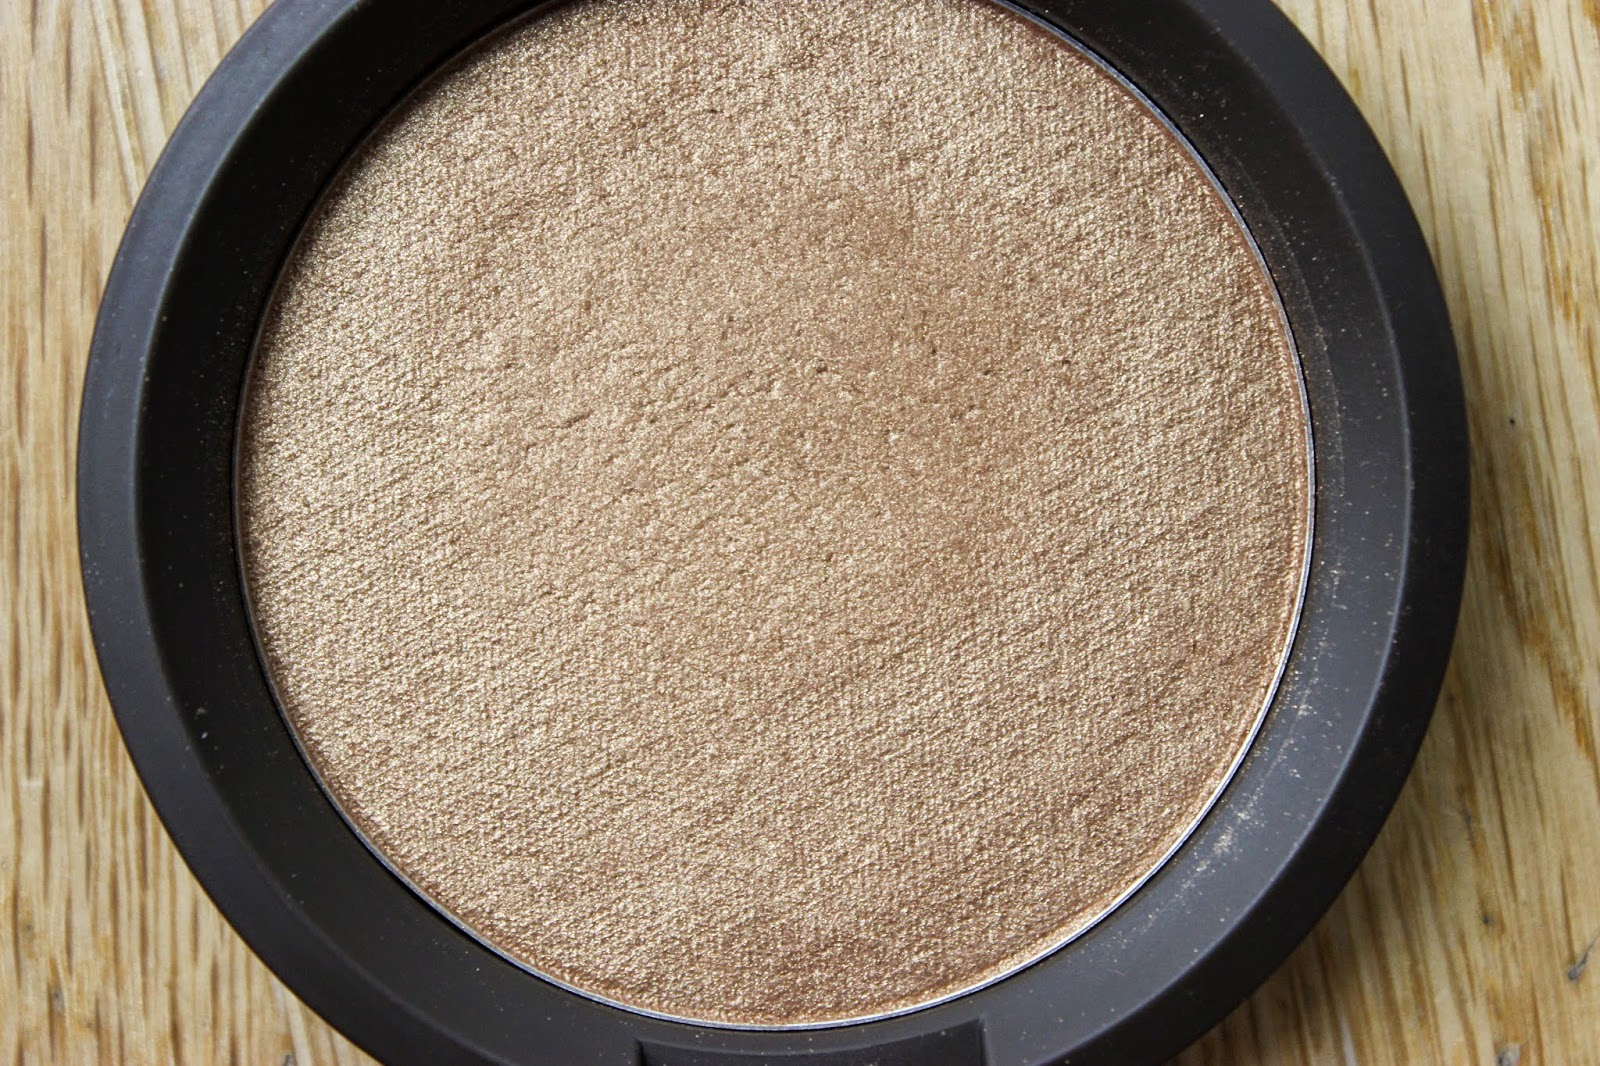 Shimmering Skin Perfector Pressed Topaz Discoveriesofself blog nc50 swatches dark skin beauty blogger review london uk